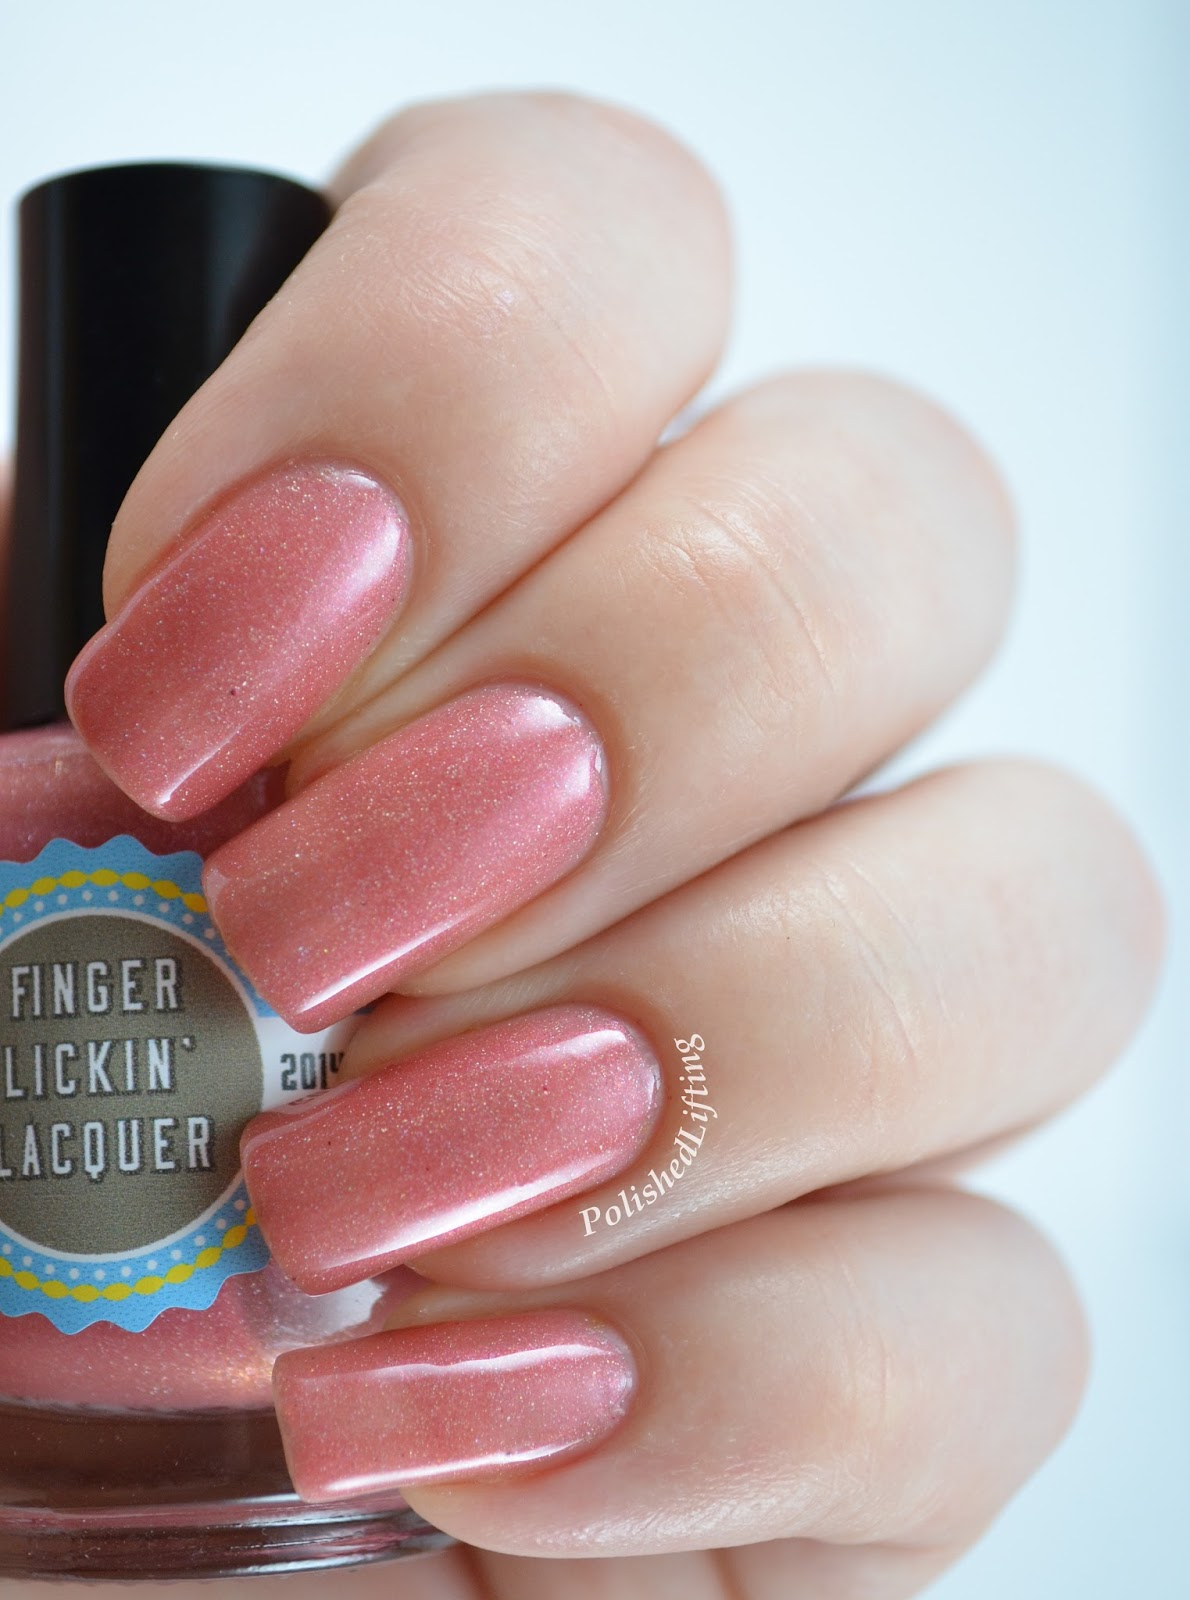 Finger Lickin' Lacquer Cherry Pie Supernatural TV